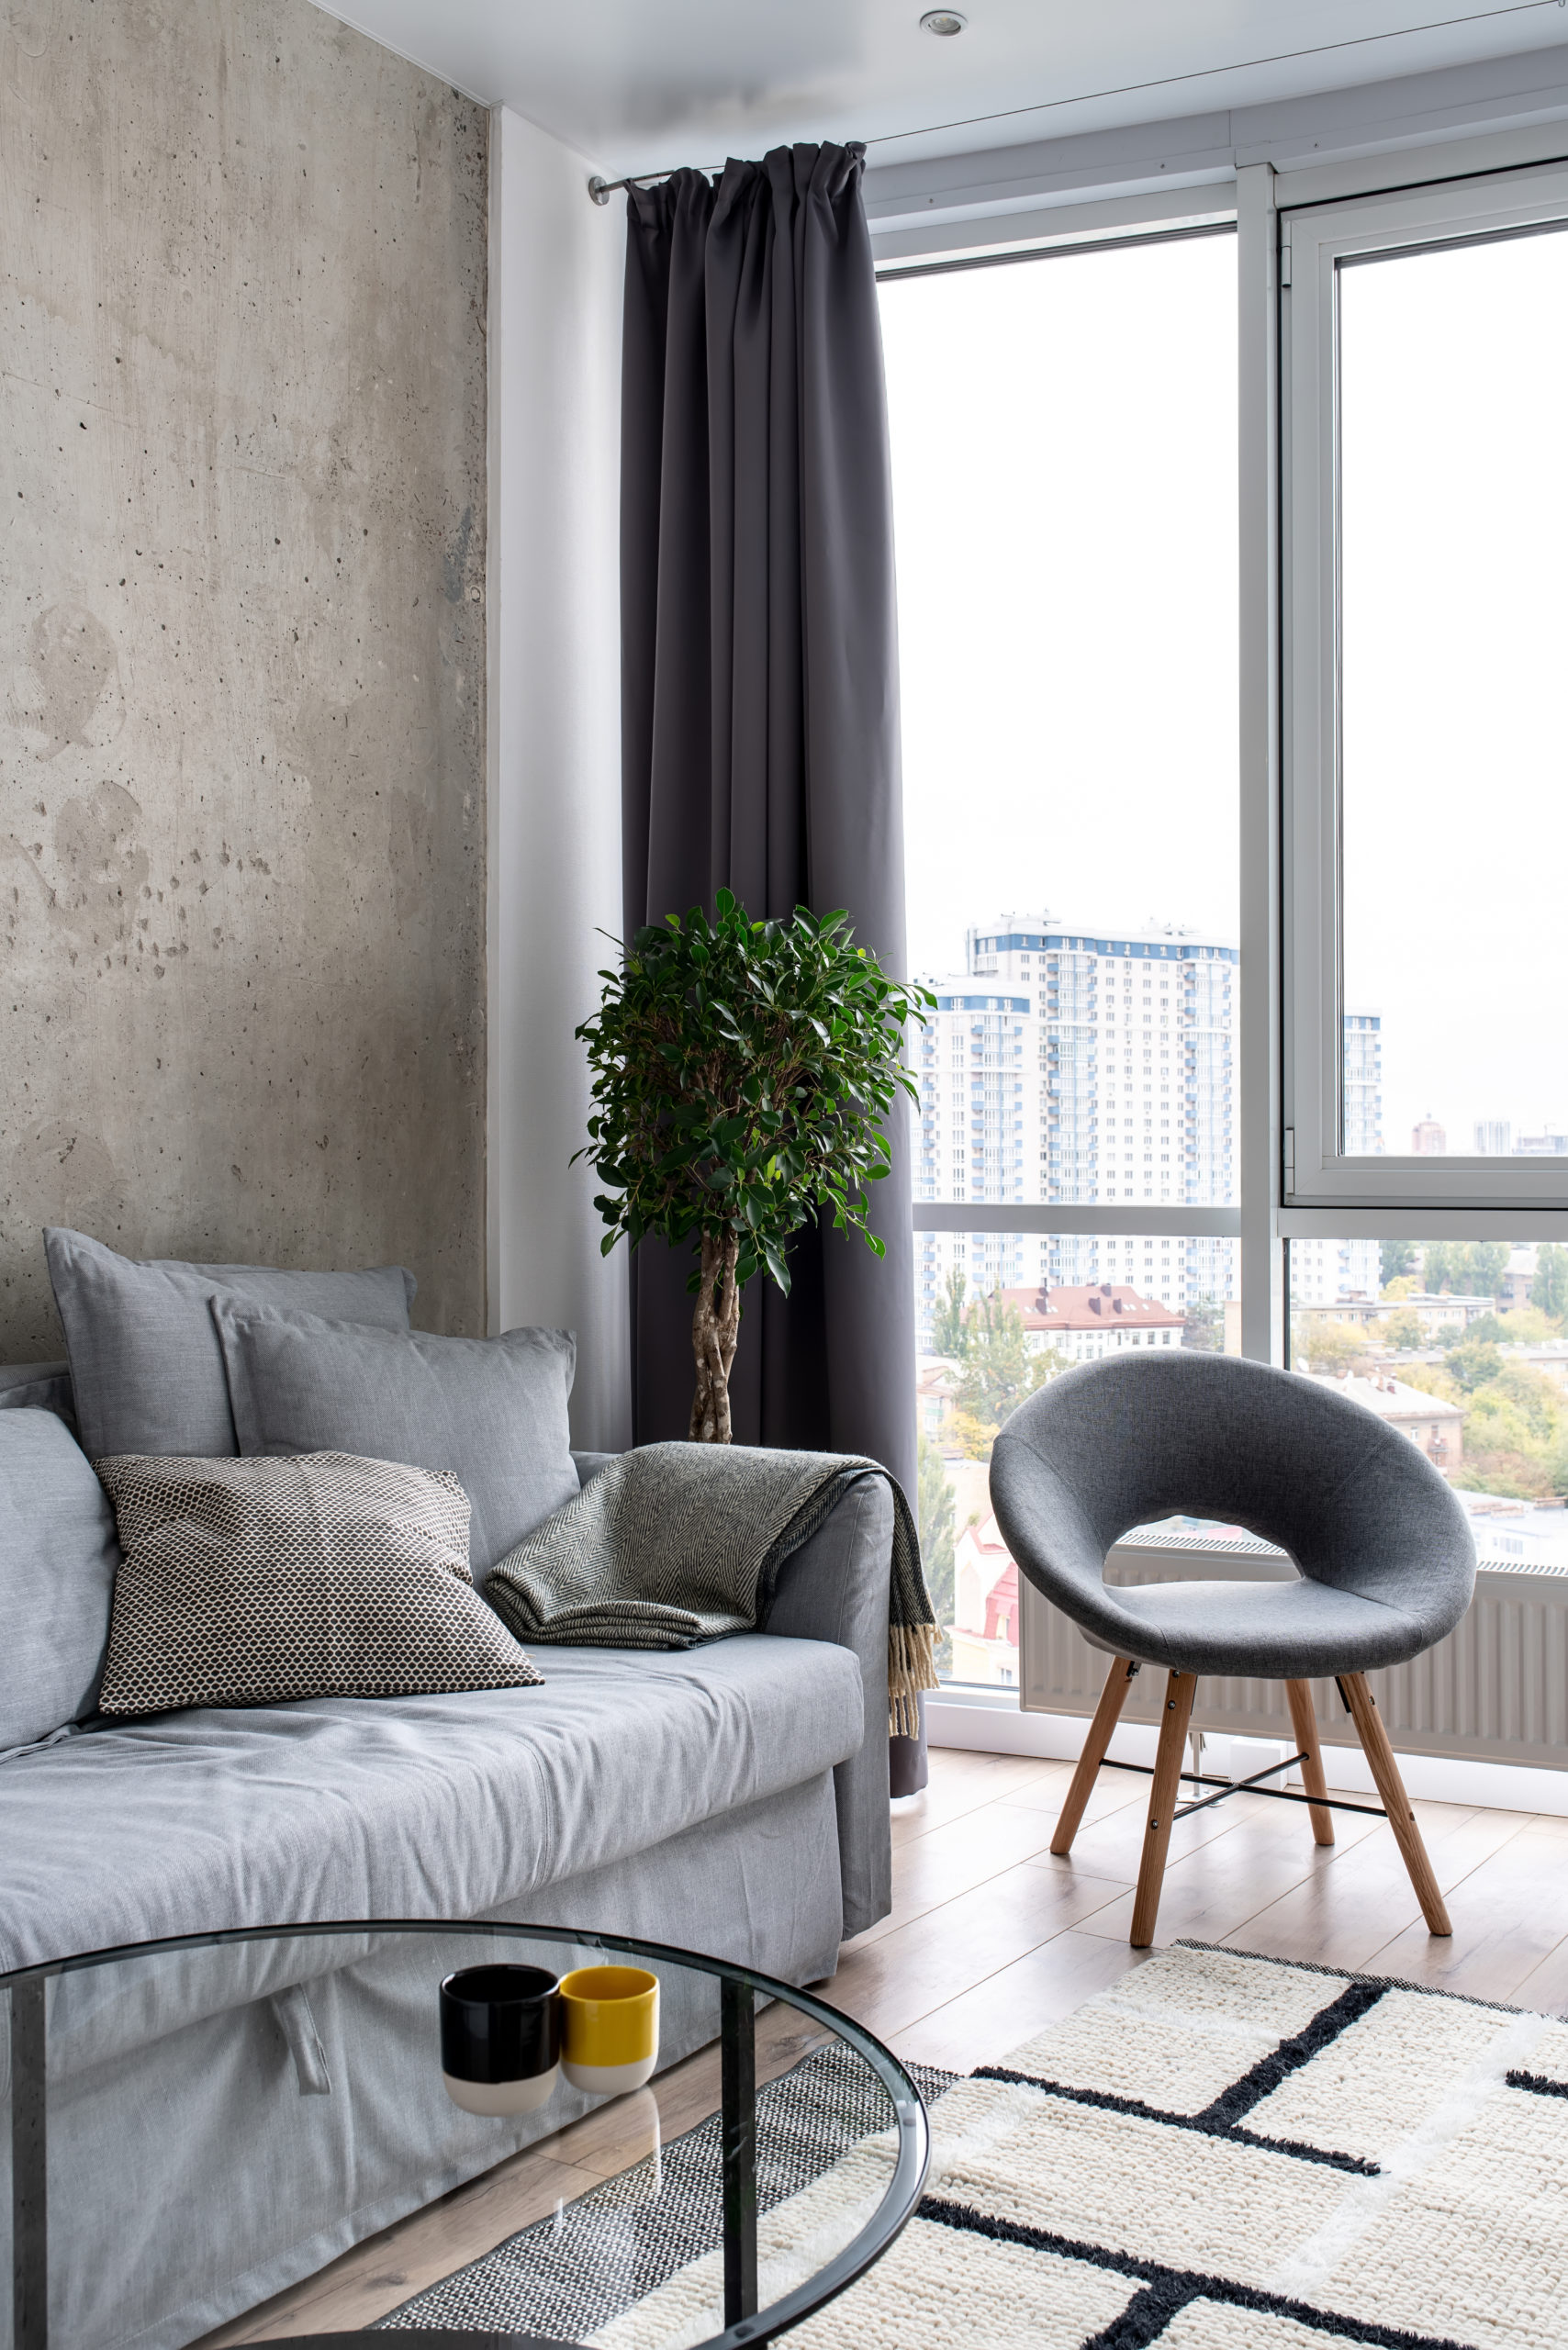 Great interior in modern style with concrete and white walls